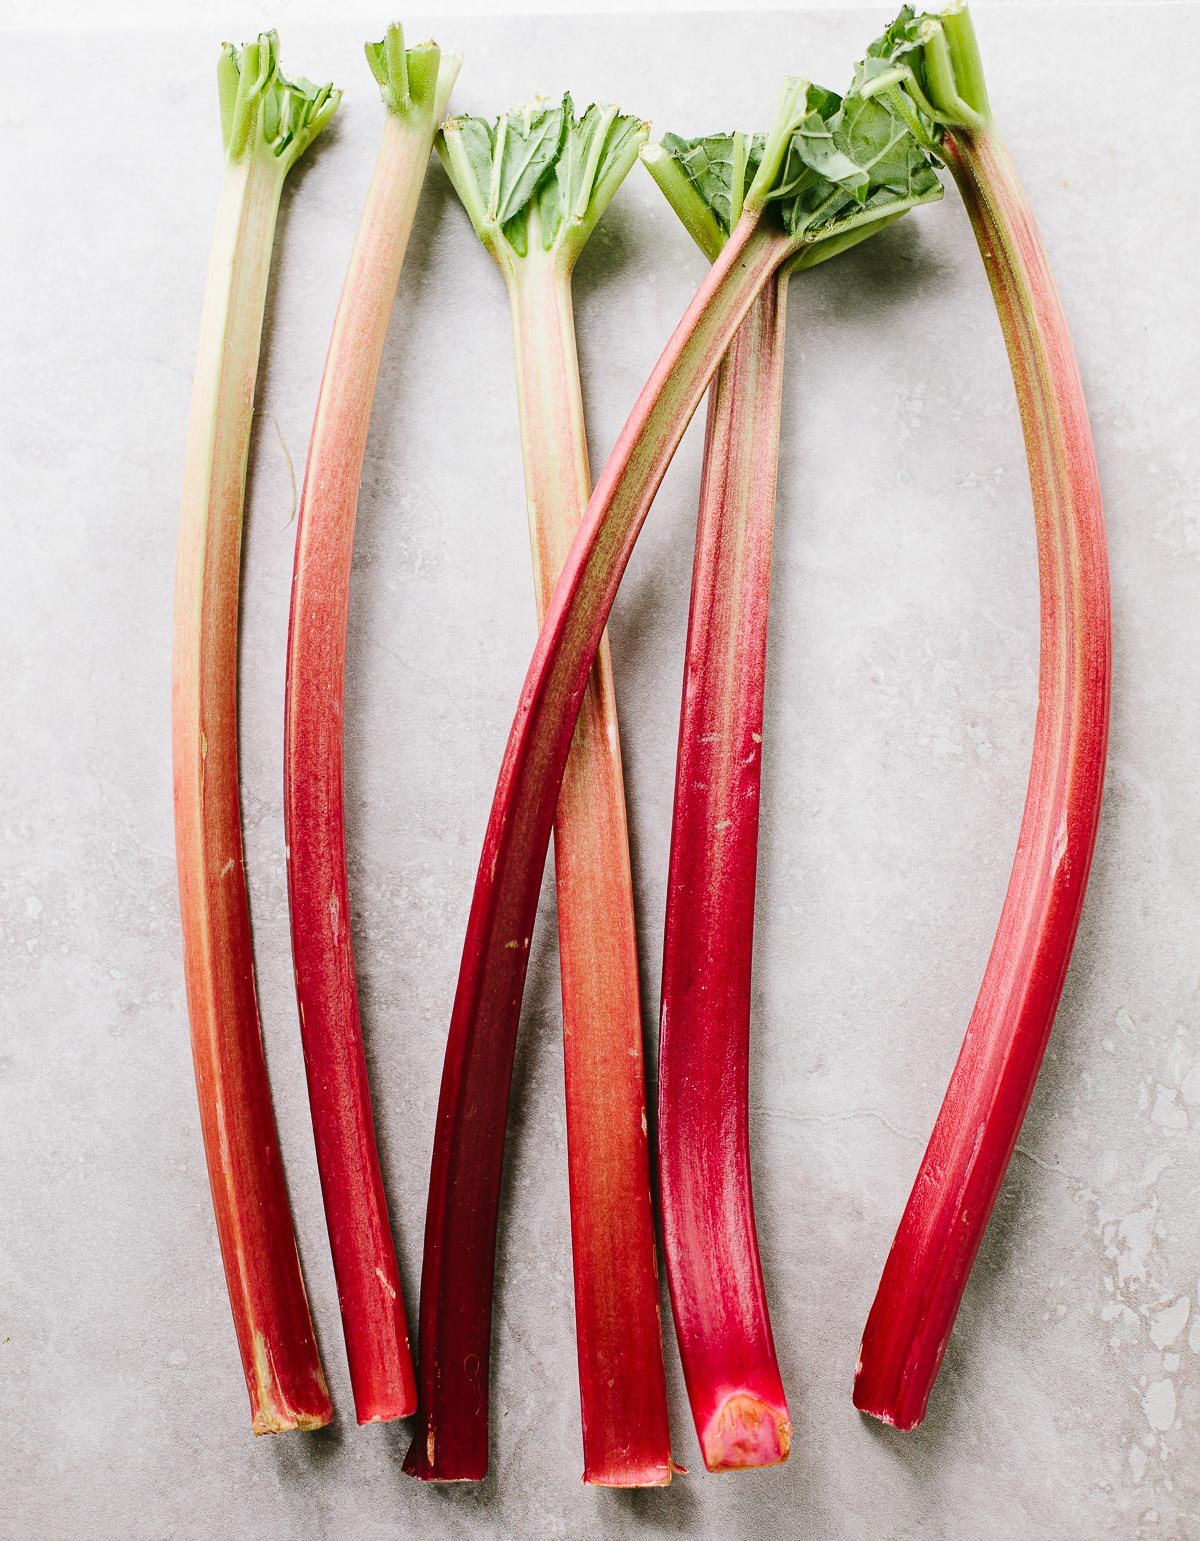 Fresh red rhubarb stalks with green tops on a gray surface.